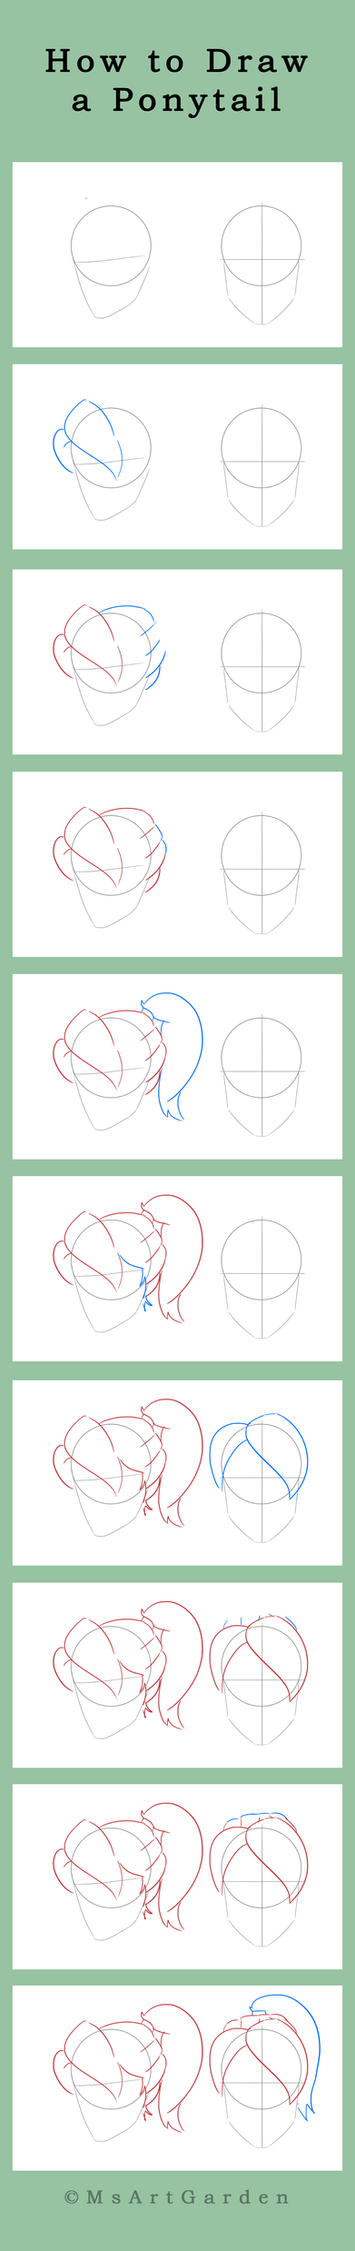 How to Draw a Ponytail by MsArtGarden